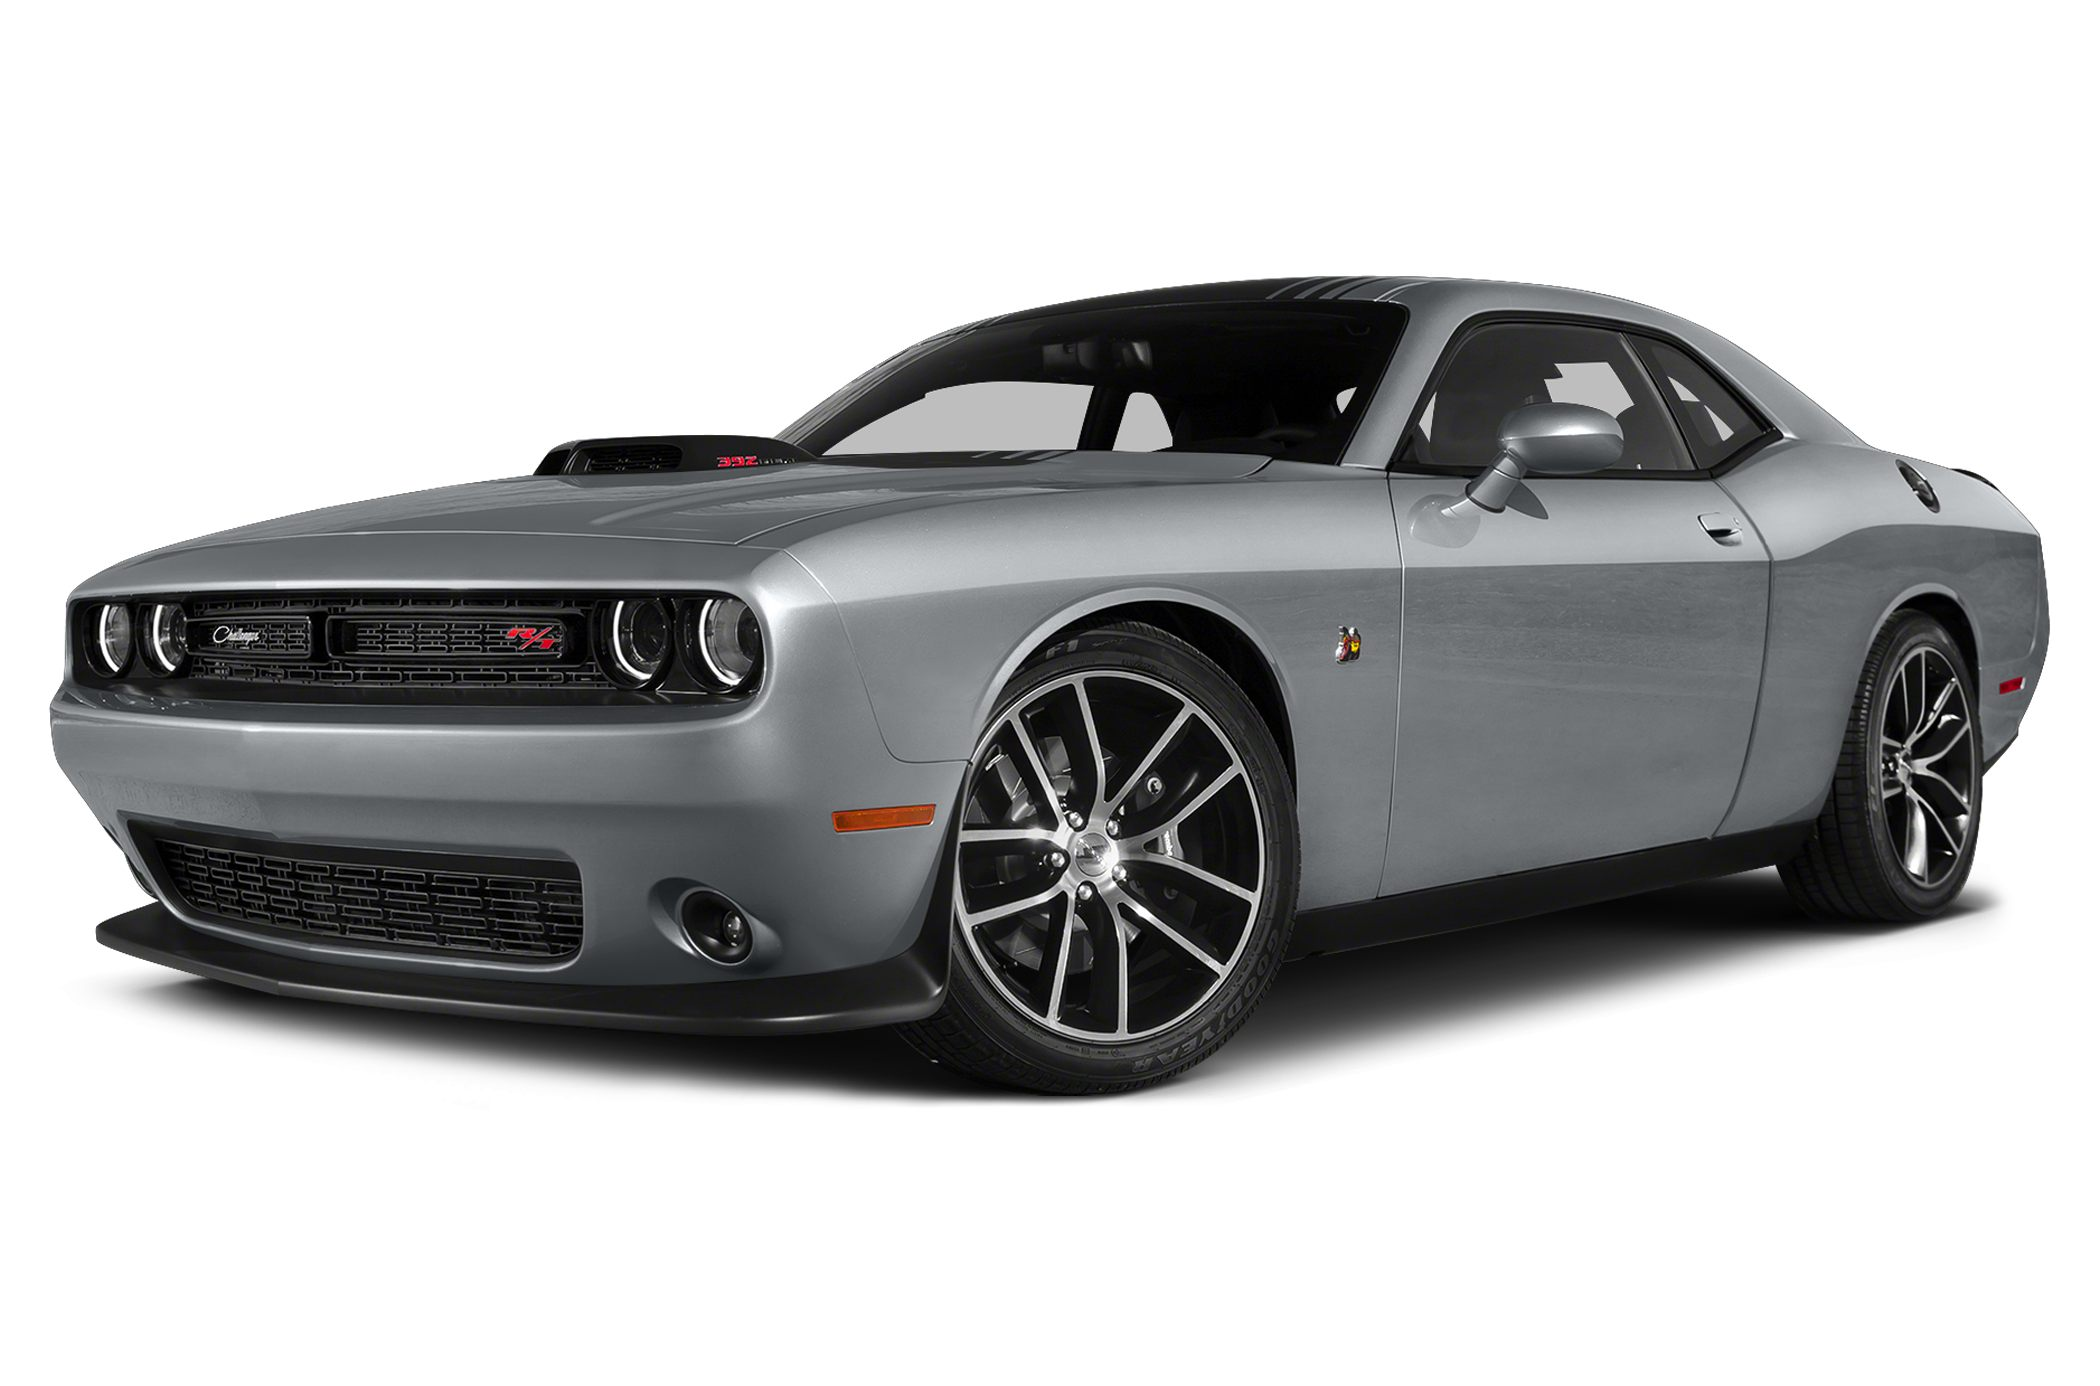 2015 Dodge Challenger R/T Scat Pack Coupe for sale in Highland Park for $47,860 with 10 miles.